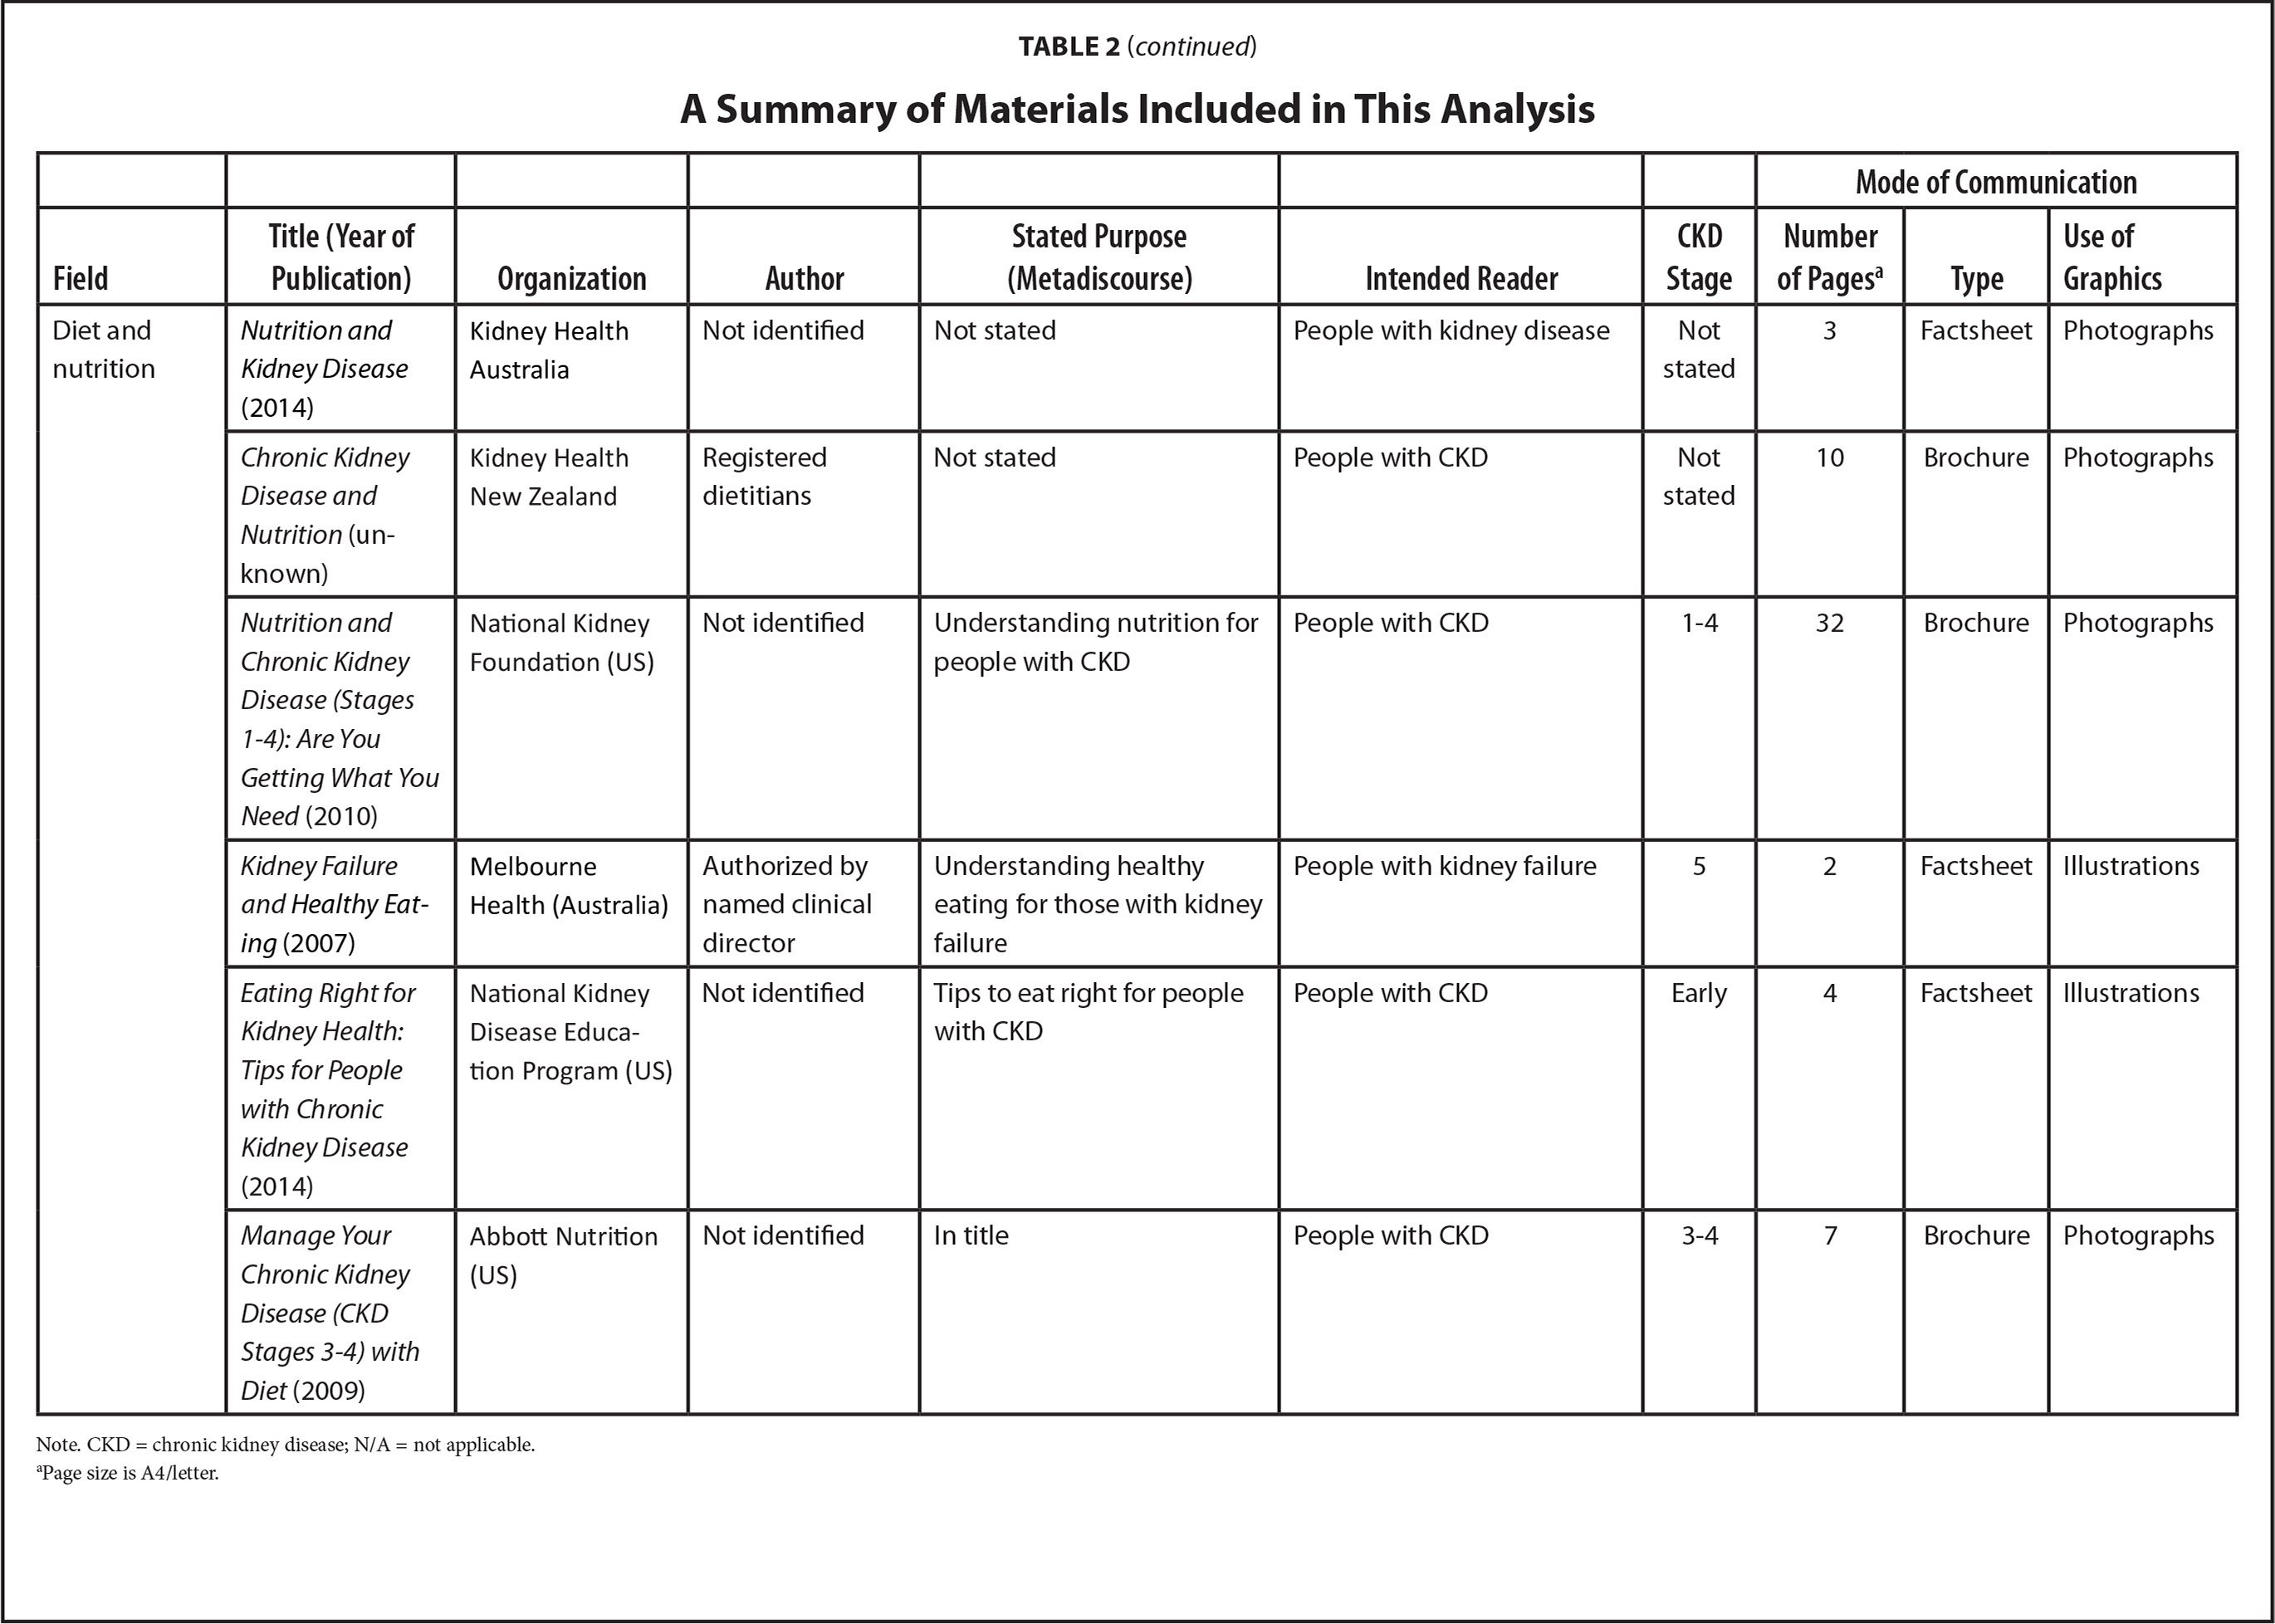 A Summary of Materials Included in This Analysis